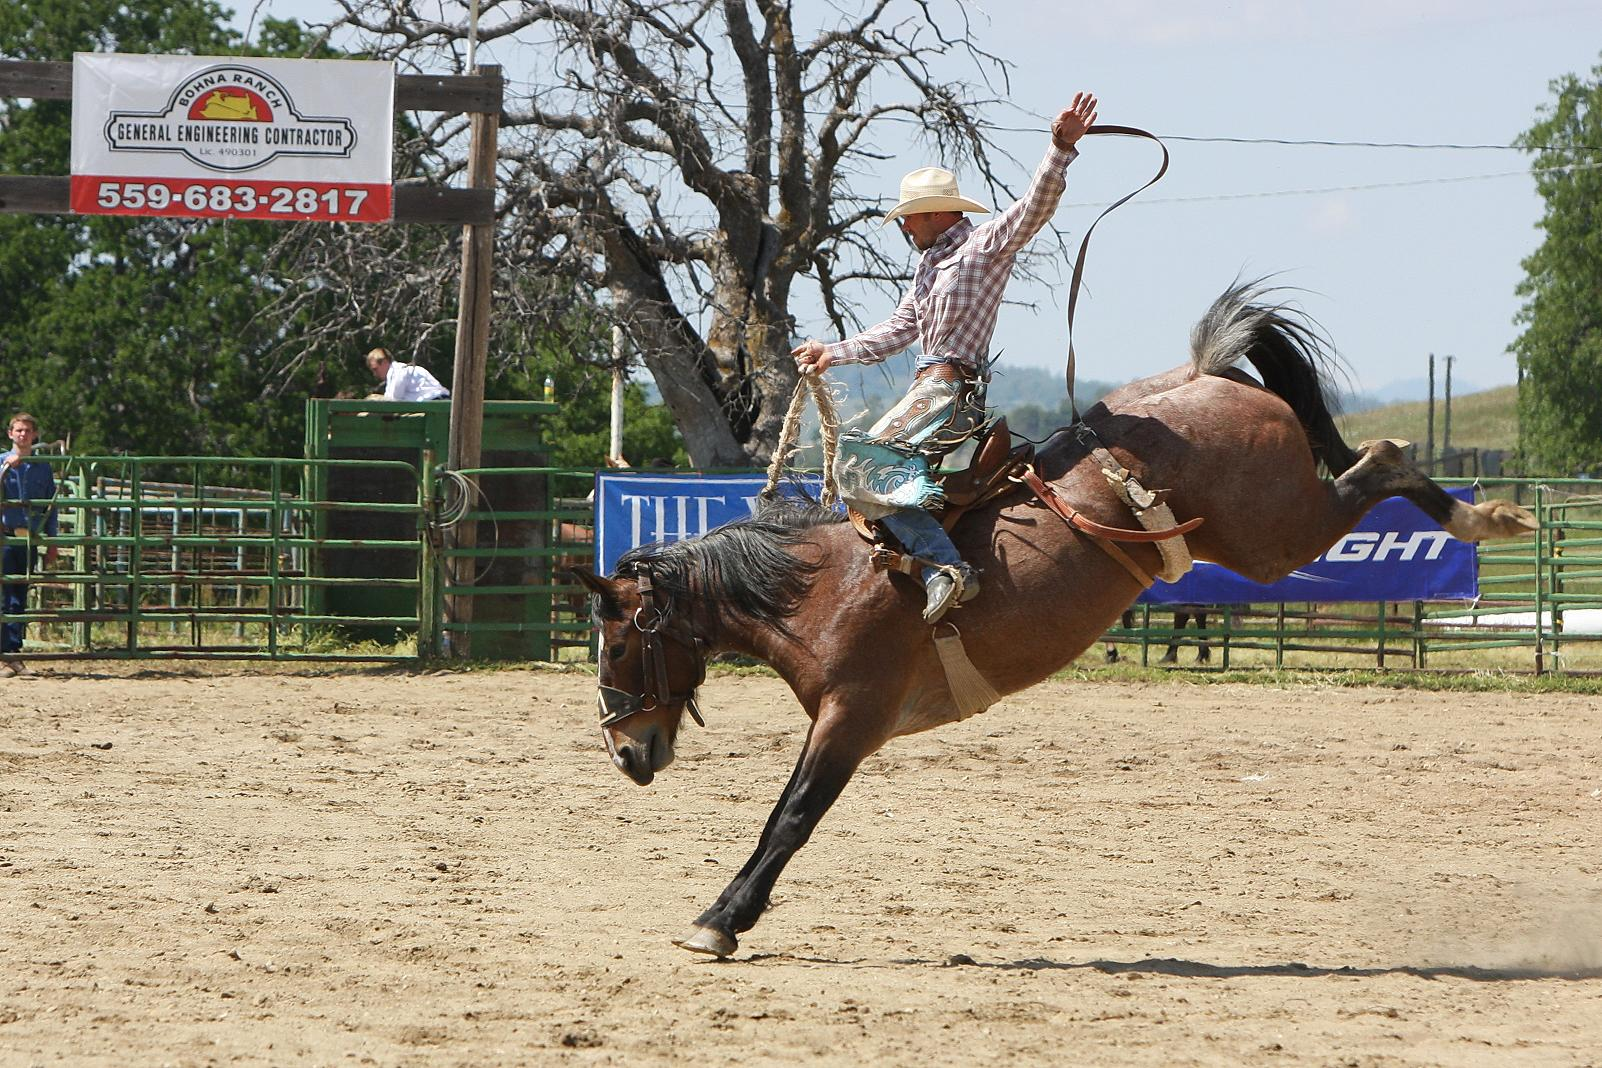 Saddle Bronc Rider -  Photo by Susanne Updike-Waite